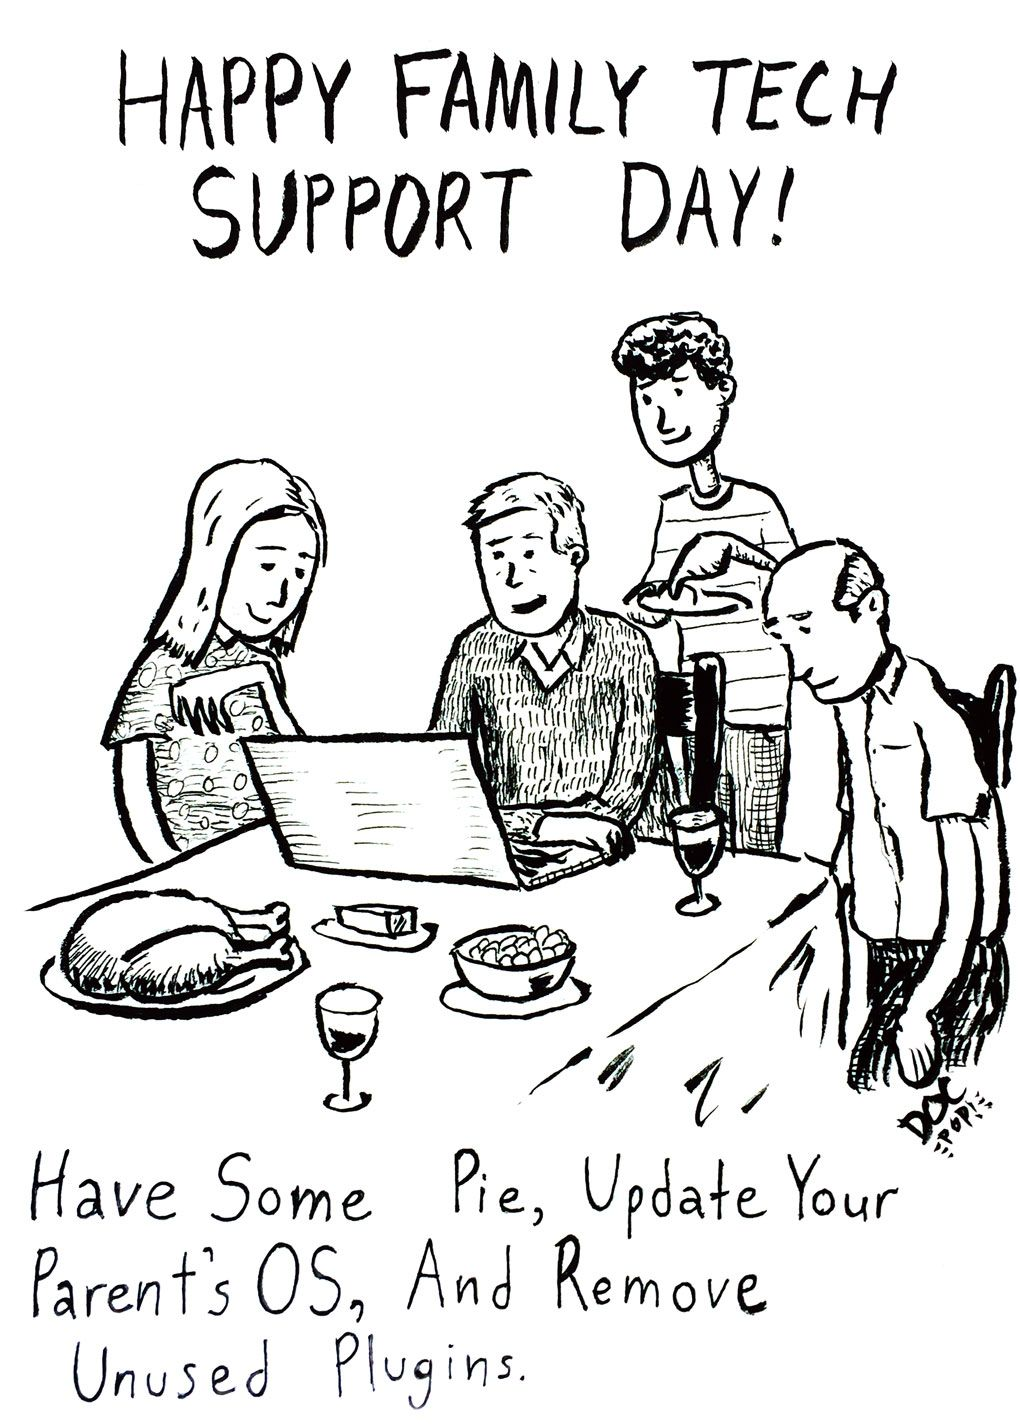 Toons Family Tech Support Day Tech humor, Tech support